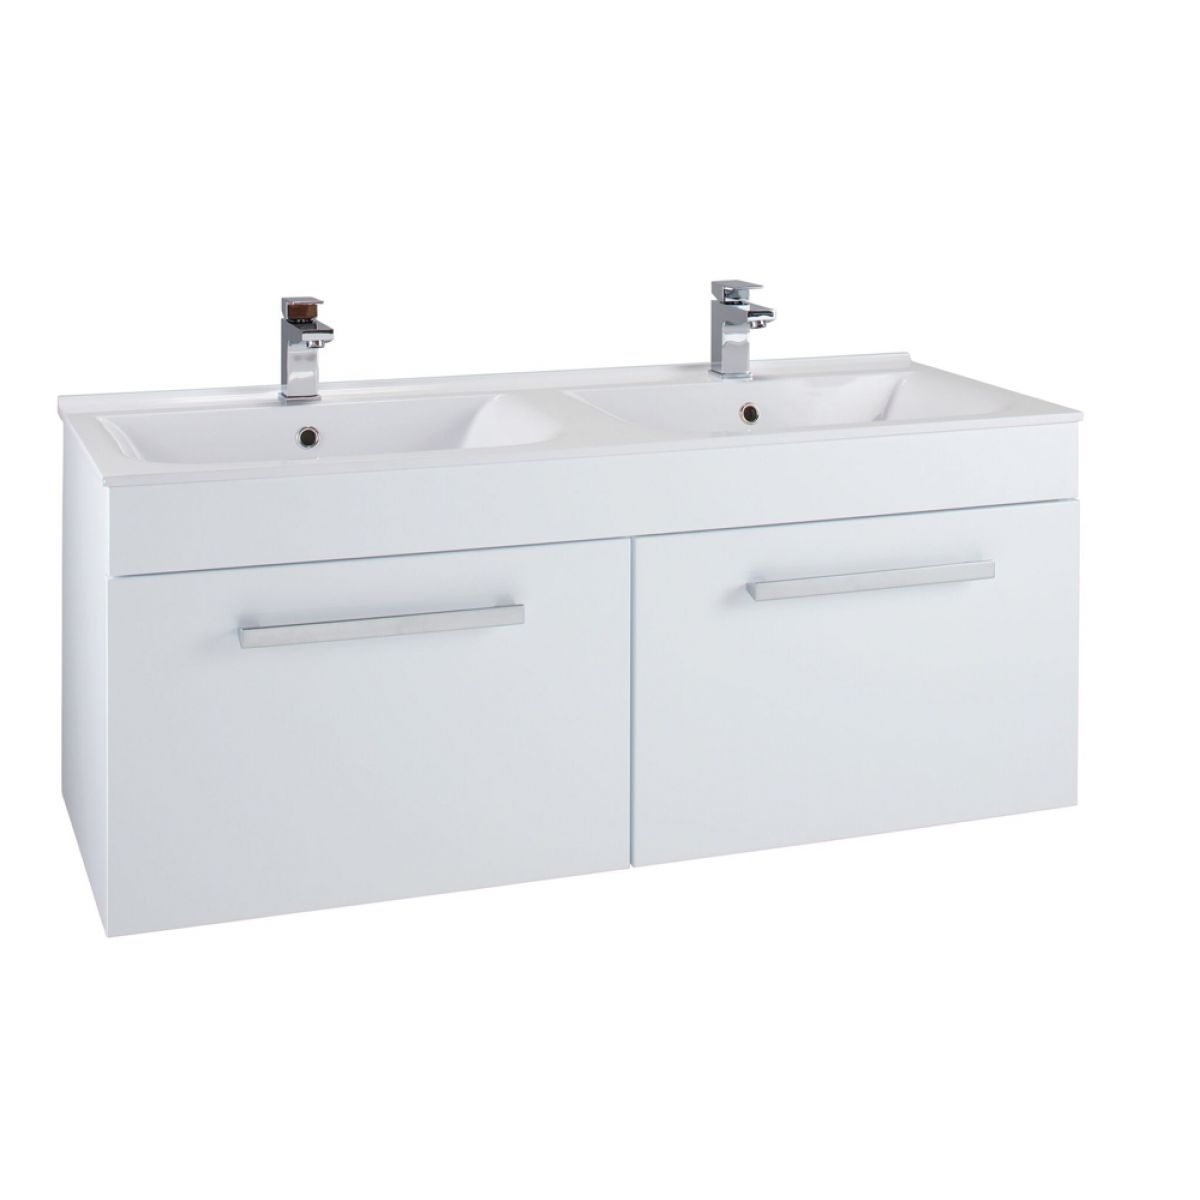 Cassellie Slimline Gloss White Wall Hung Dual Vanity Unit 1250mm